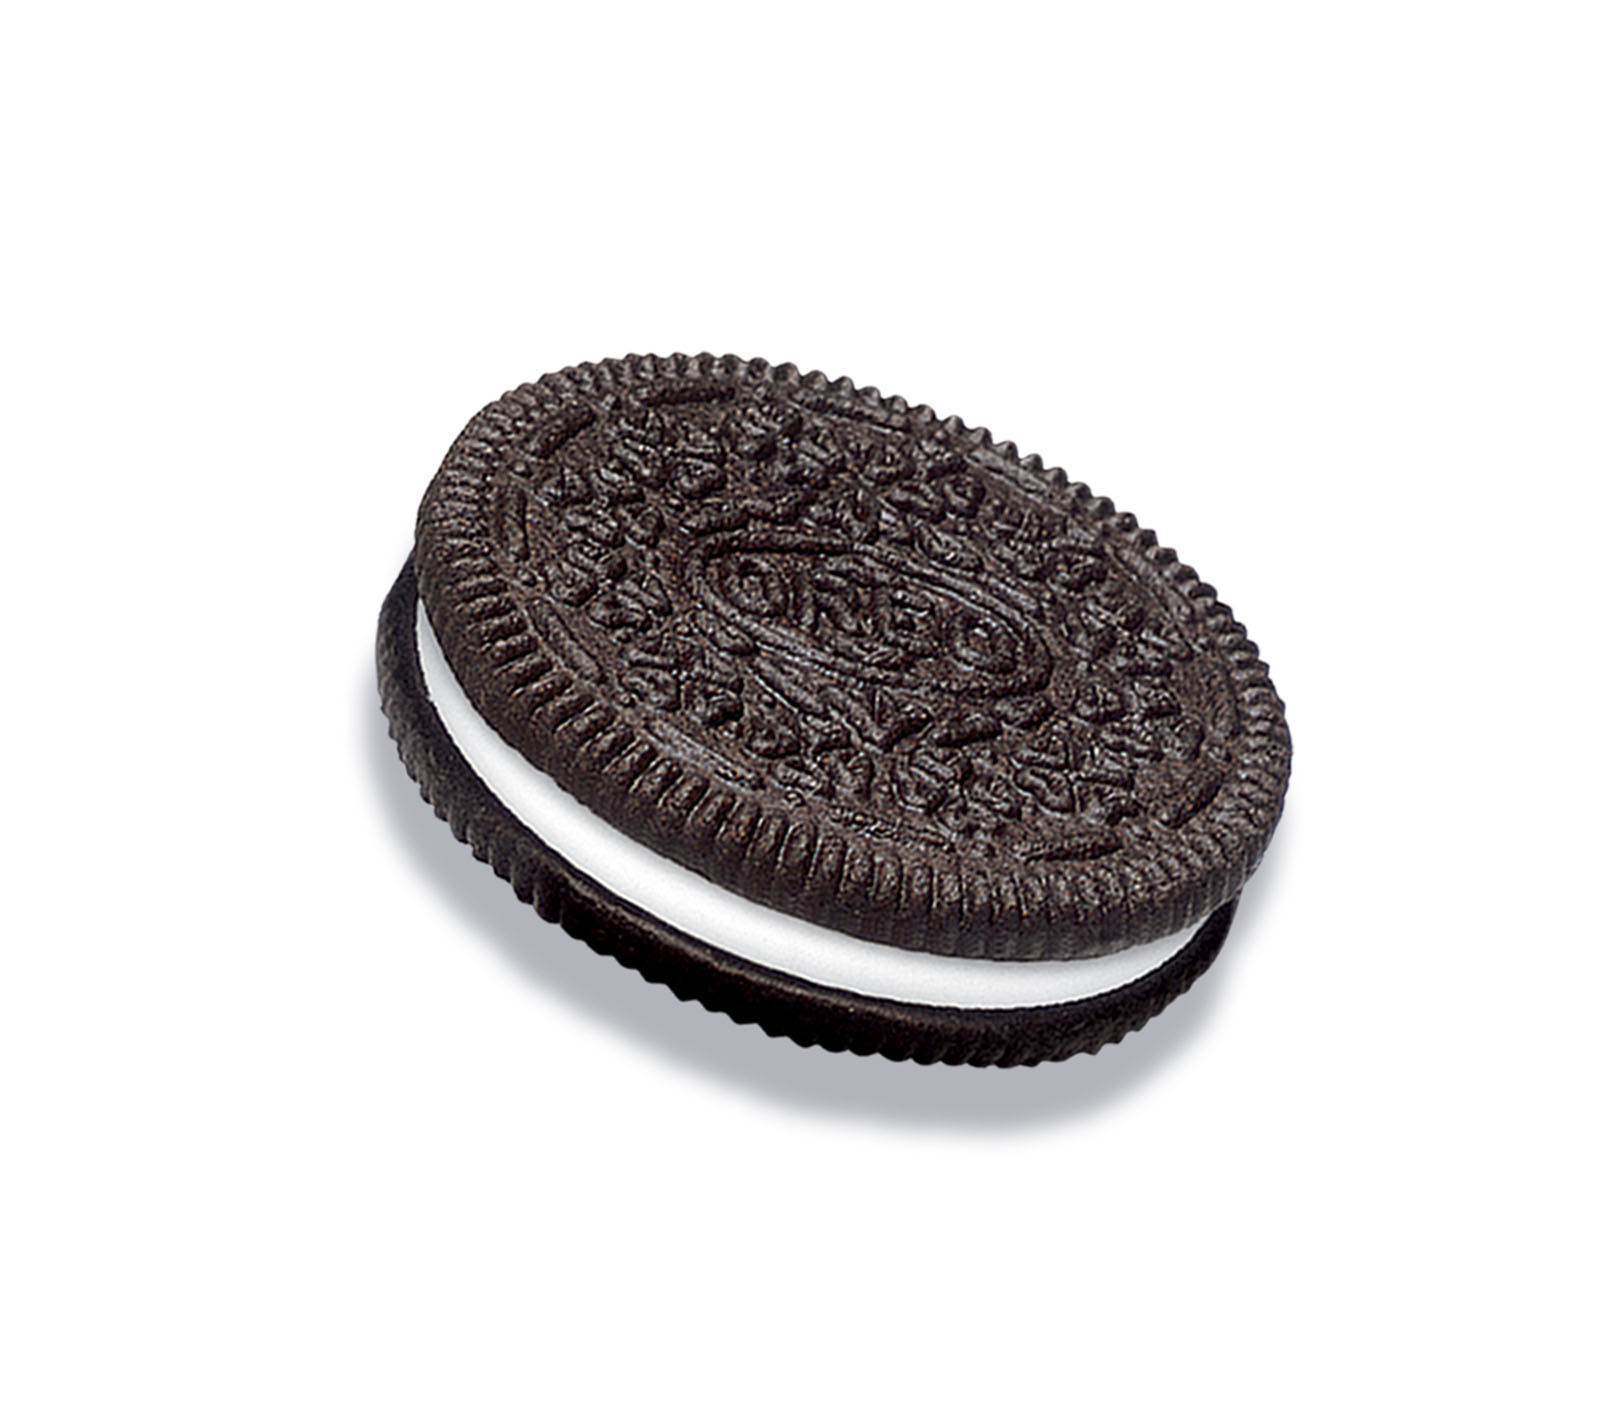 Pa Students Needed Permission Slip To Eat One Oreo Cookie